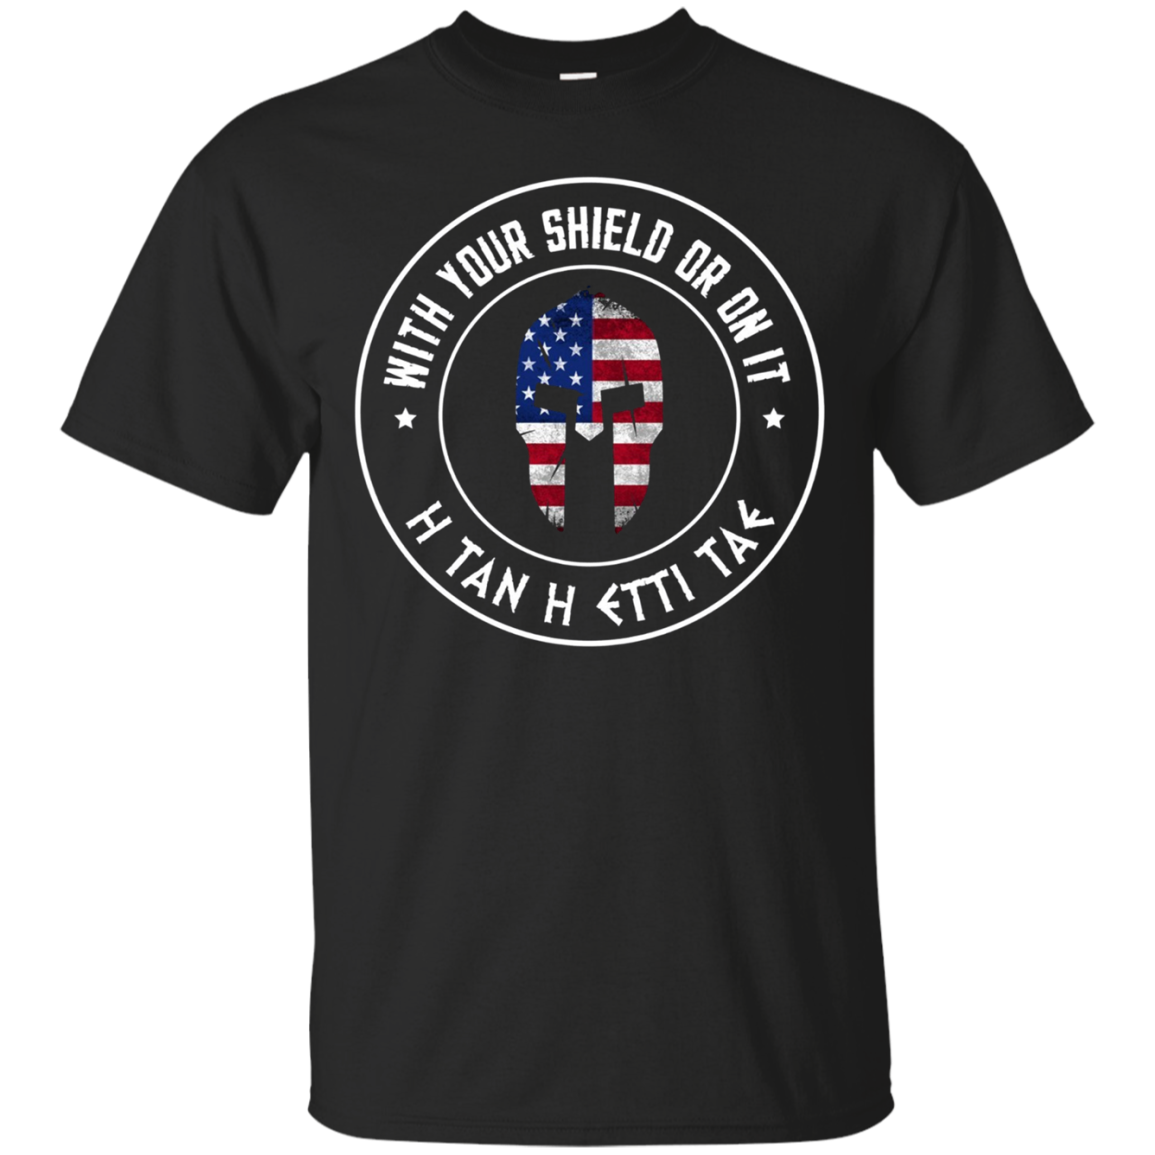 With Your Shield Or On It H Tan H Etti Tae Sparta T-Shirt